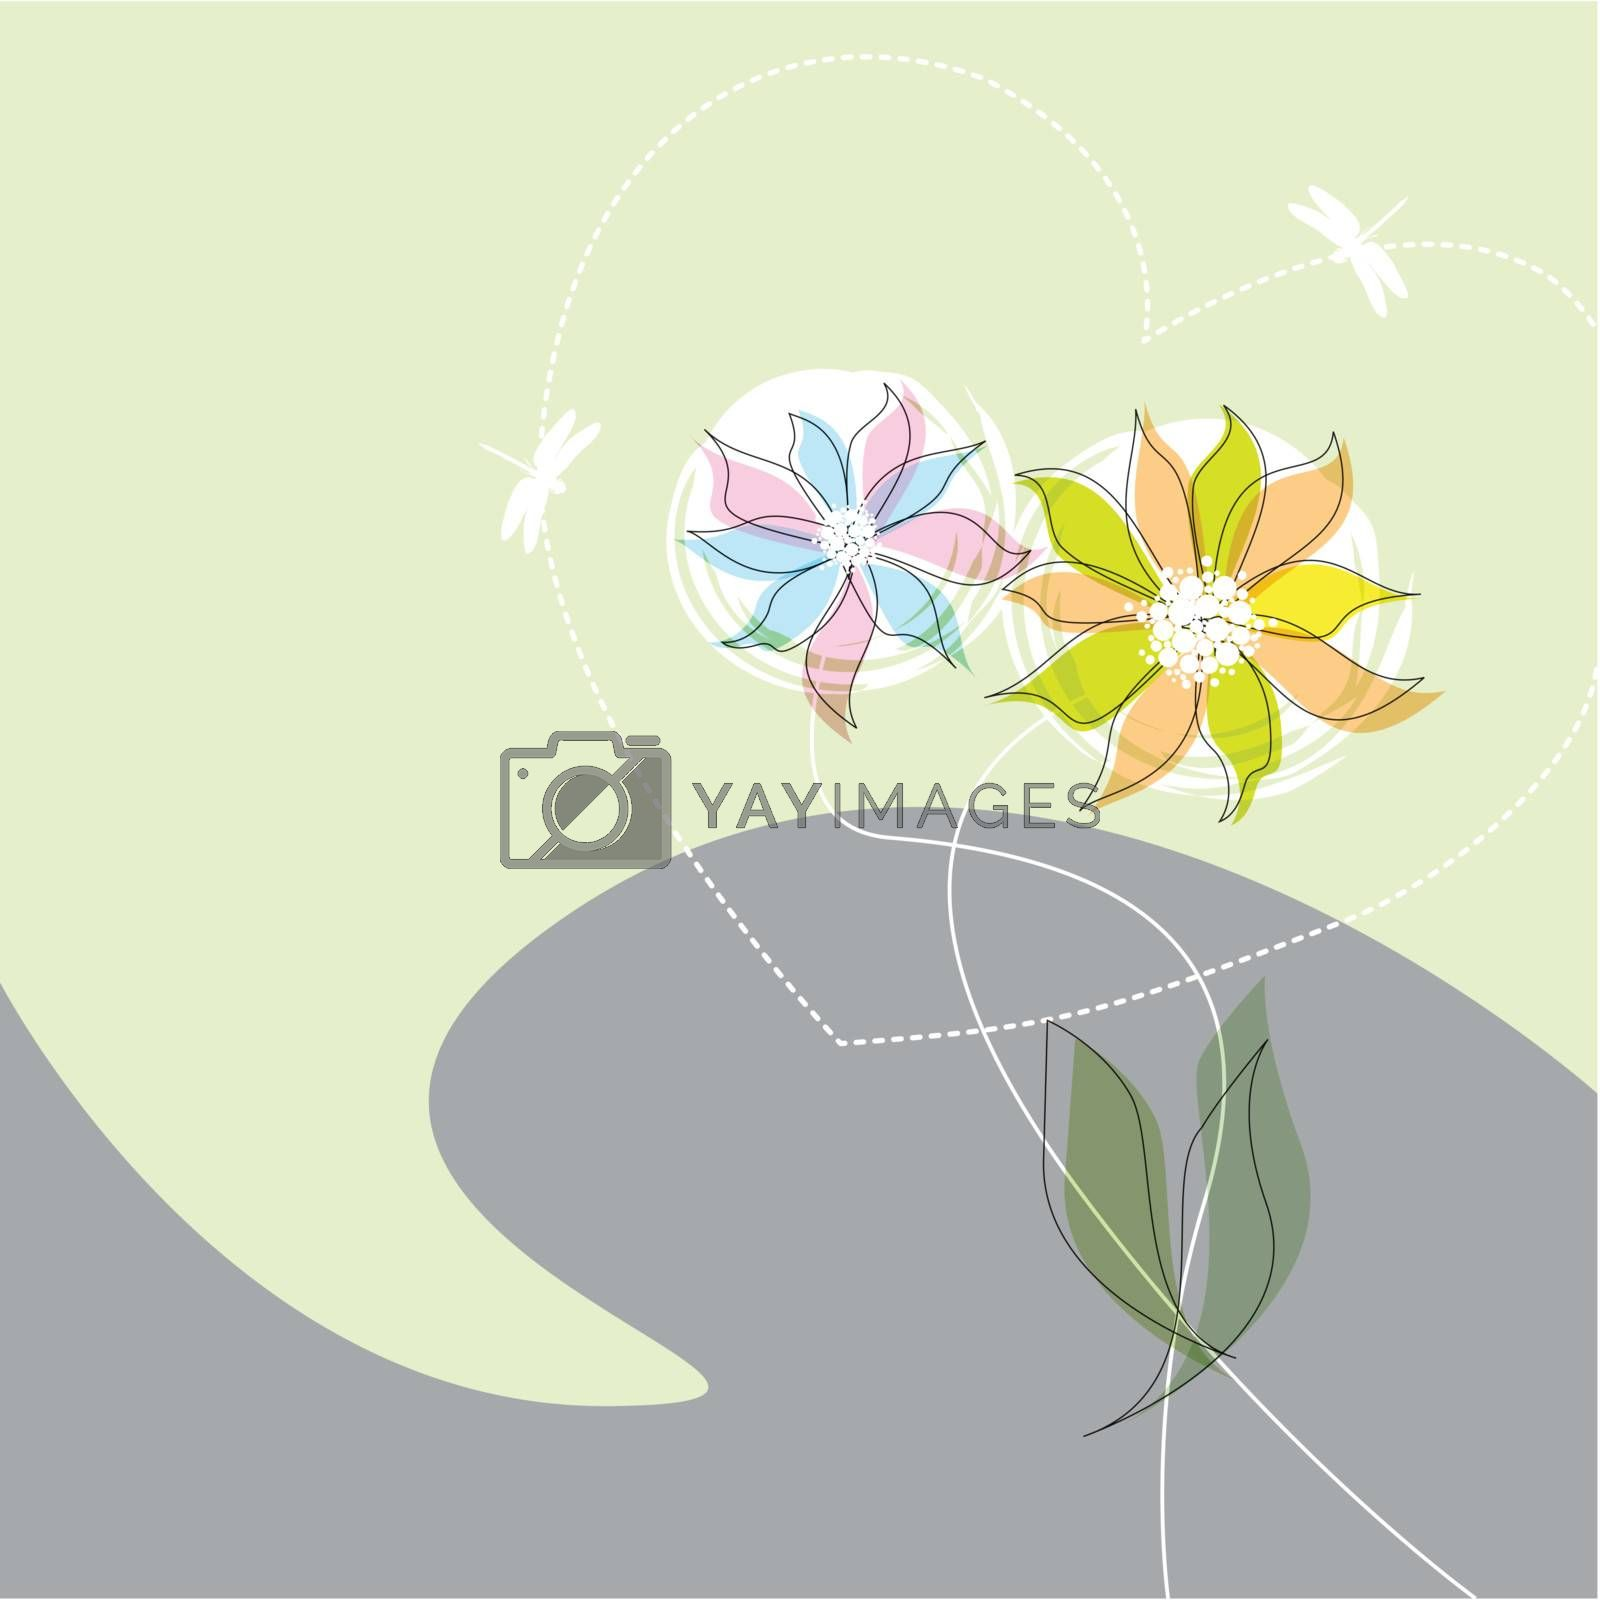 Royalty free image of Graphic flower dance with heart by nirots